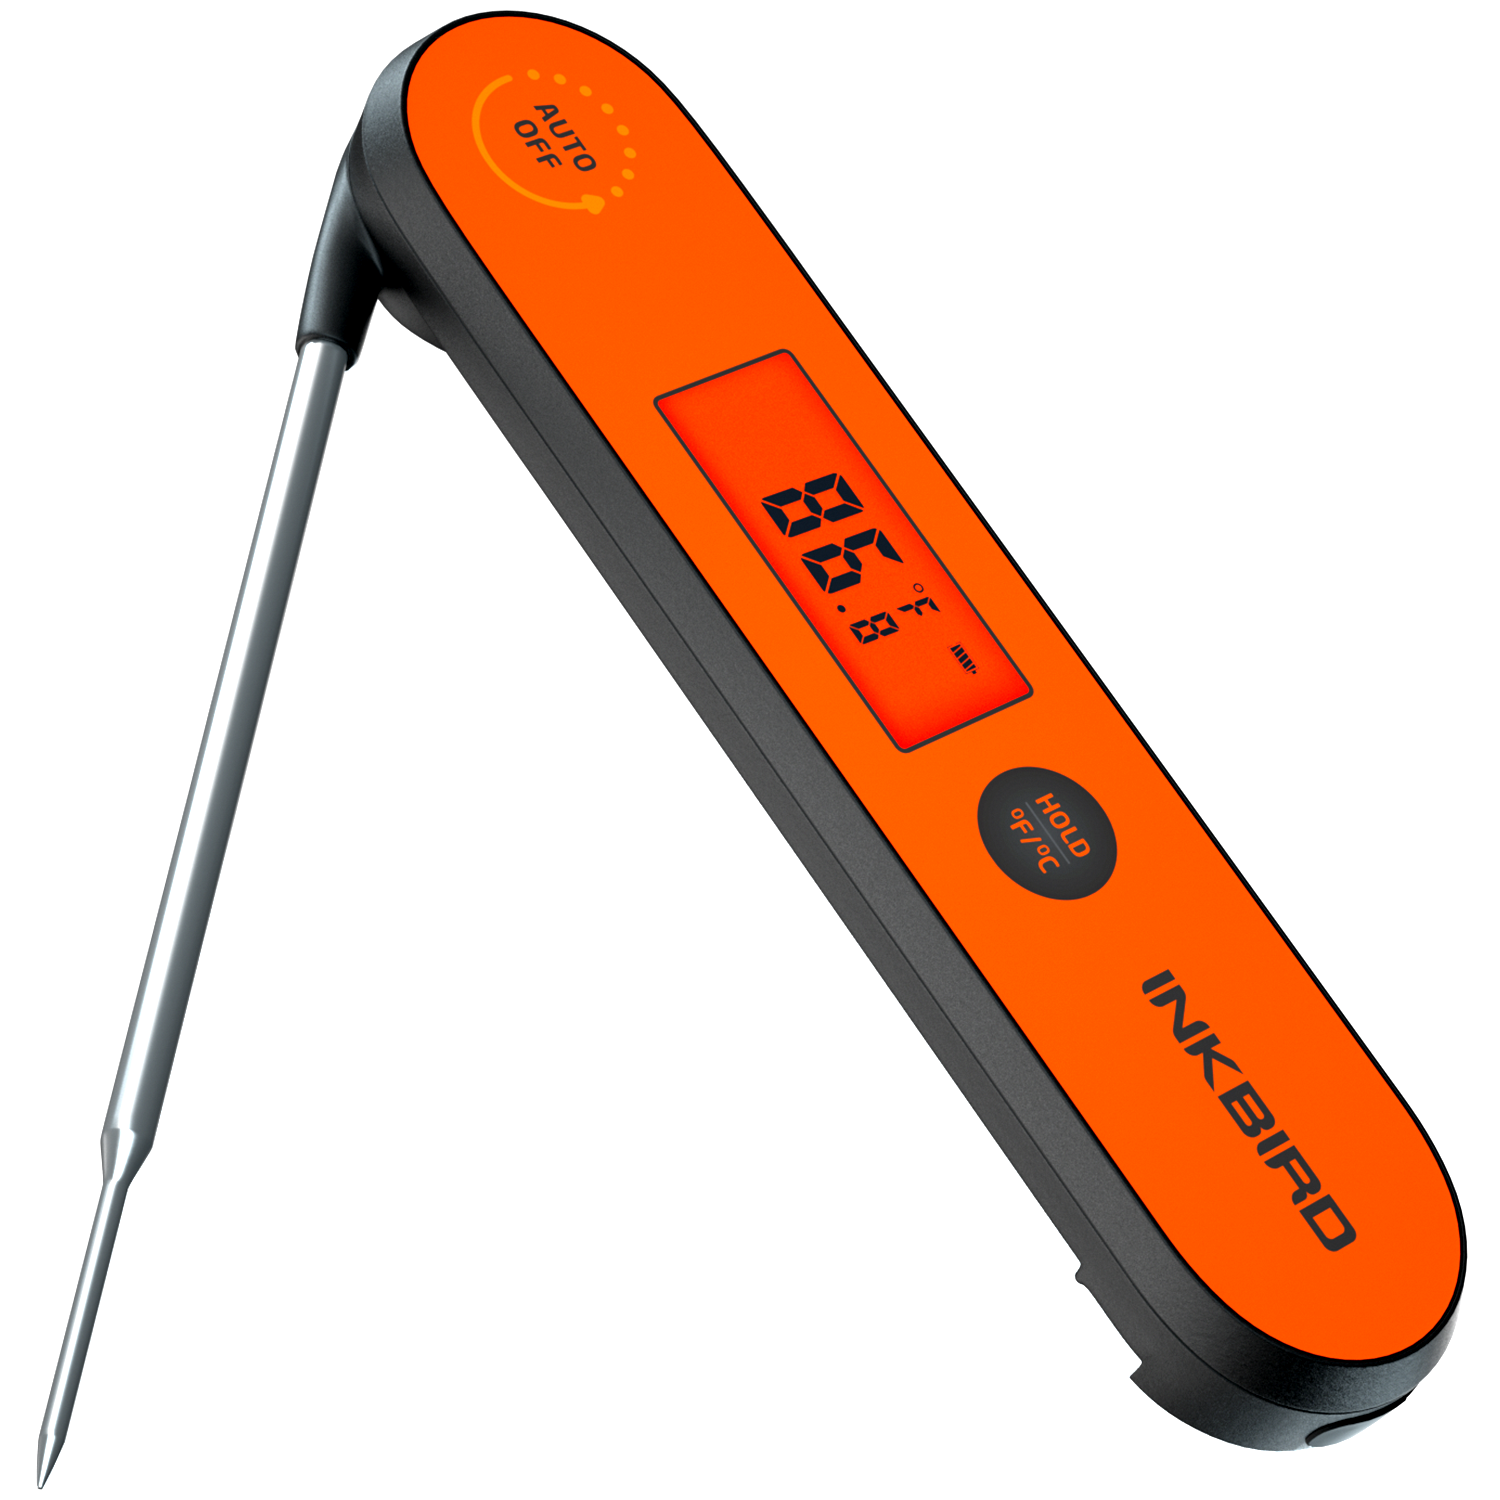 Long Stainless Steel thermometer sensor probe Inkbird IBT-2X 6X replacement tool